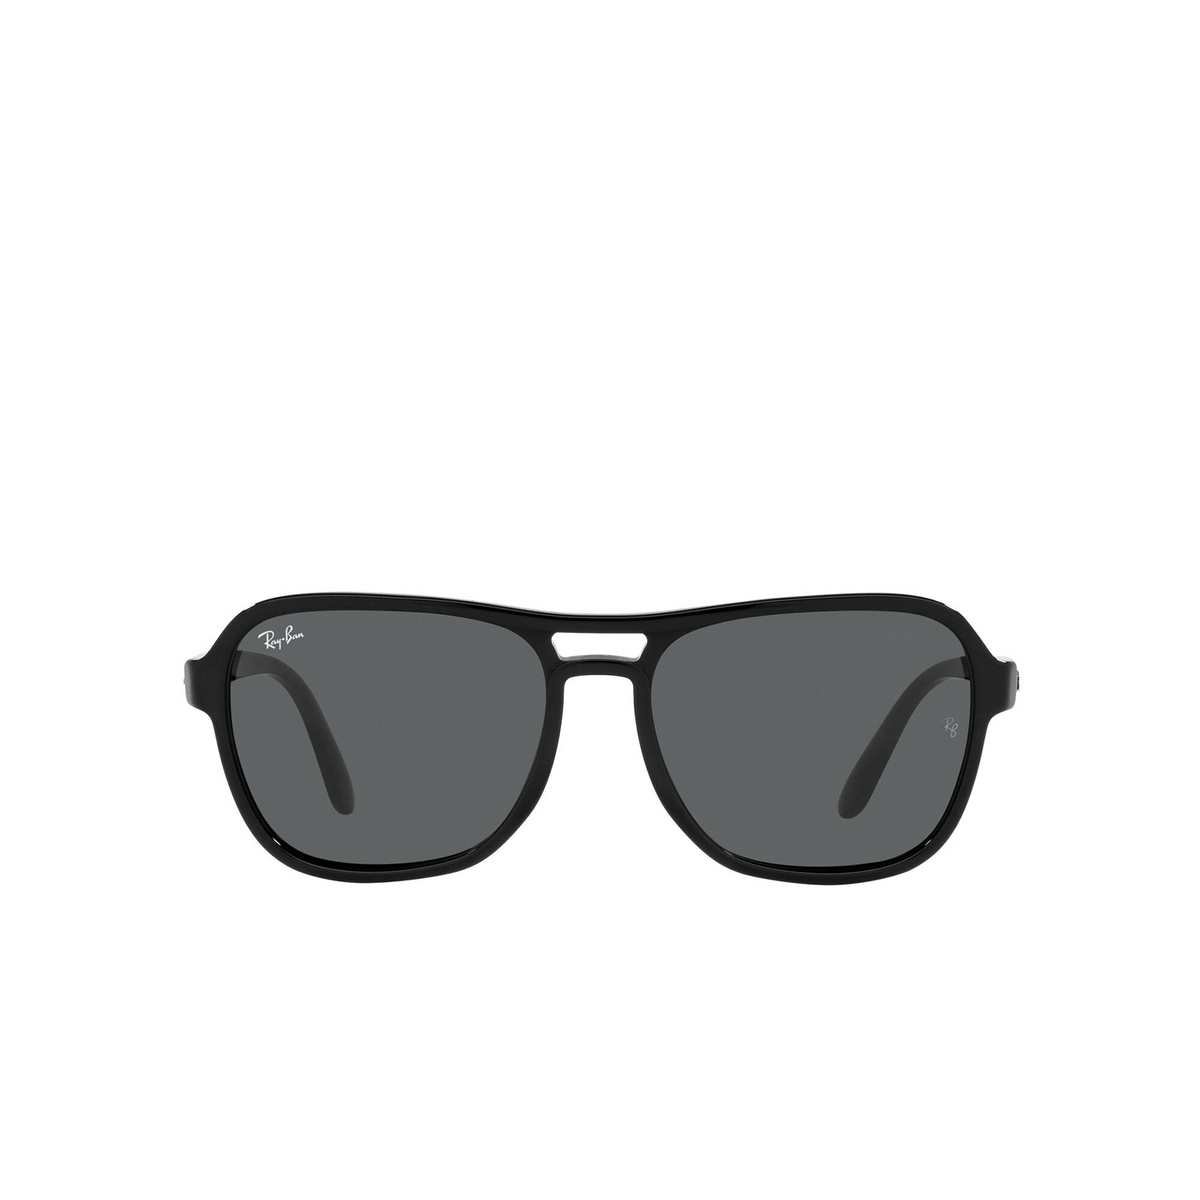 Ray-Ban® Square Sunglasses: State Side RB4356 color Black 601/B1 - front view.